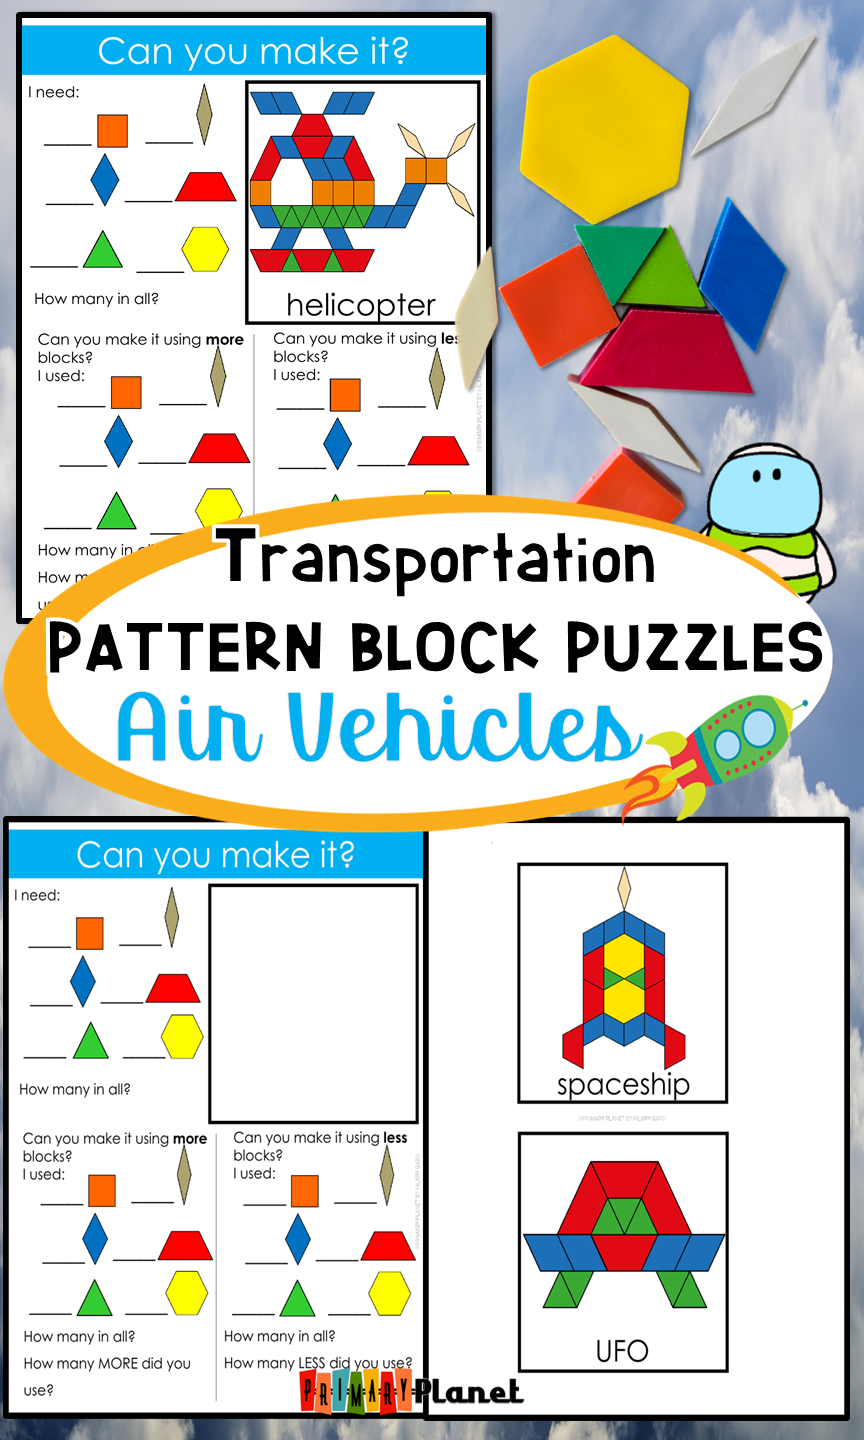 Transportation Pattern Block Mat Puzzles Air Vehicles Pattern